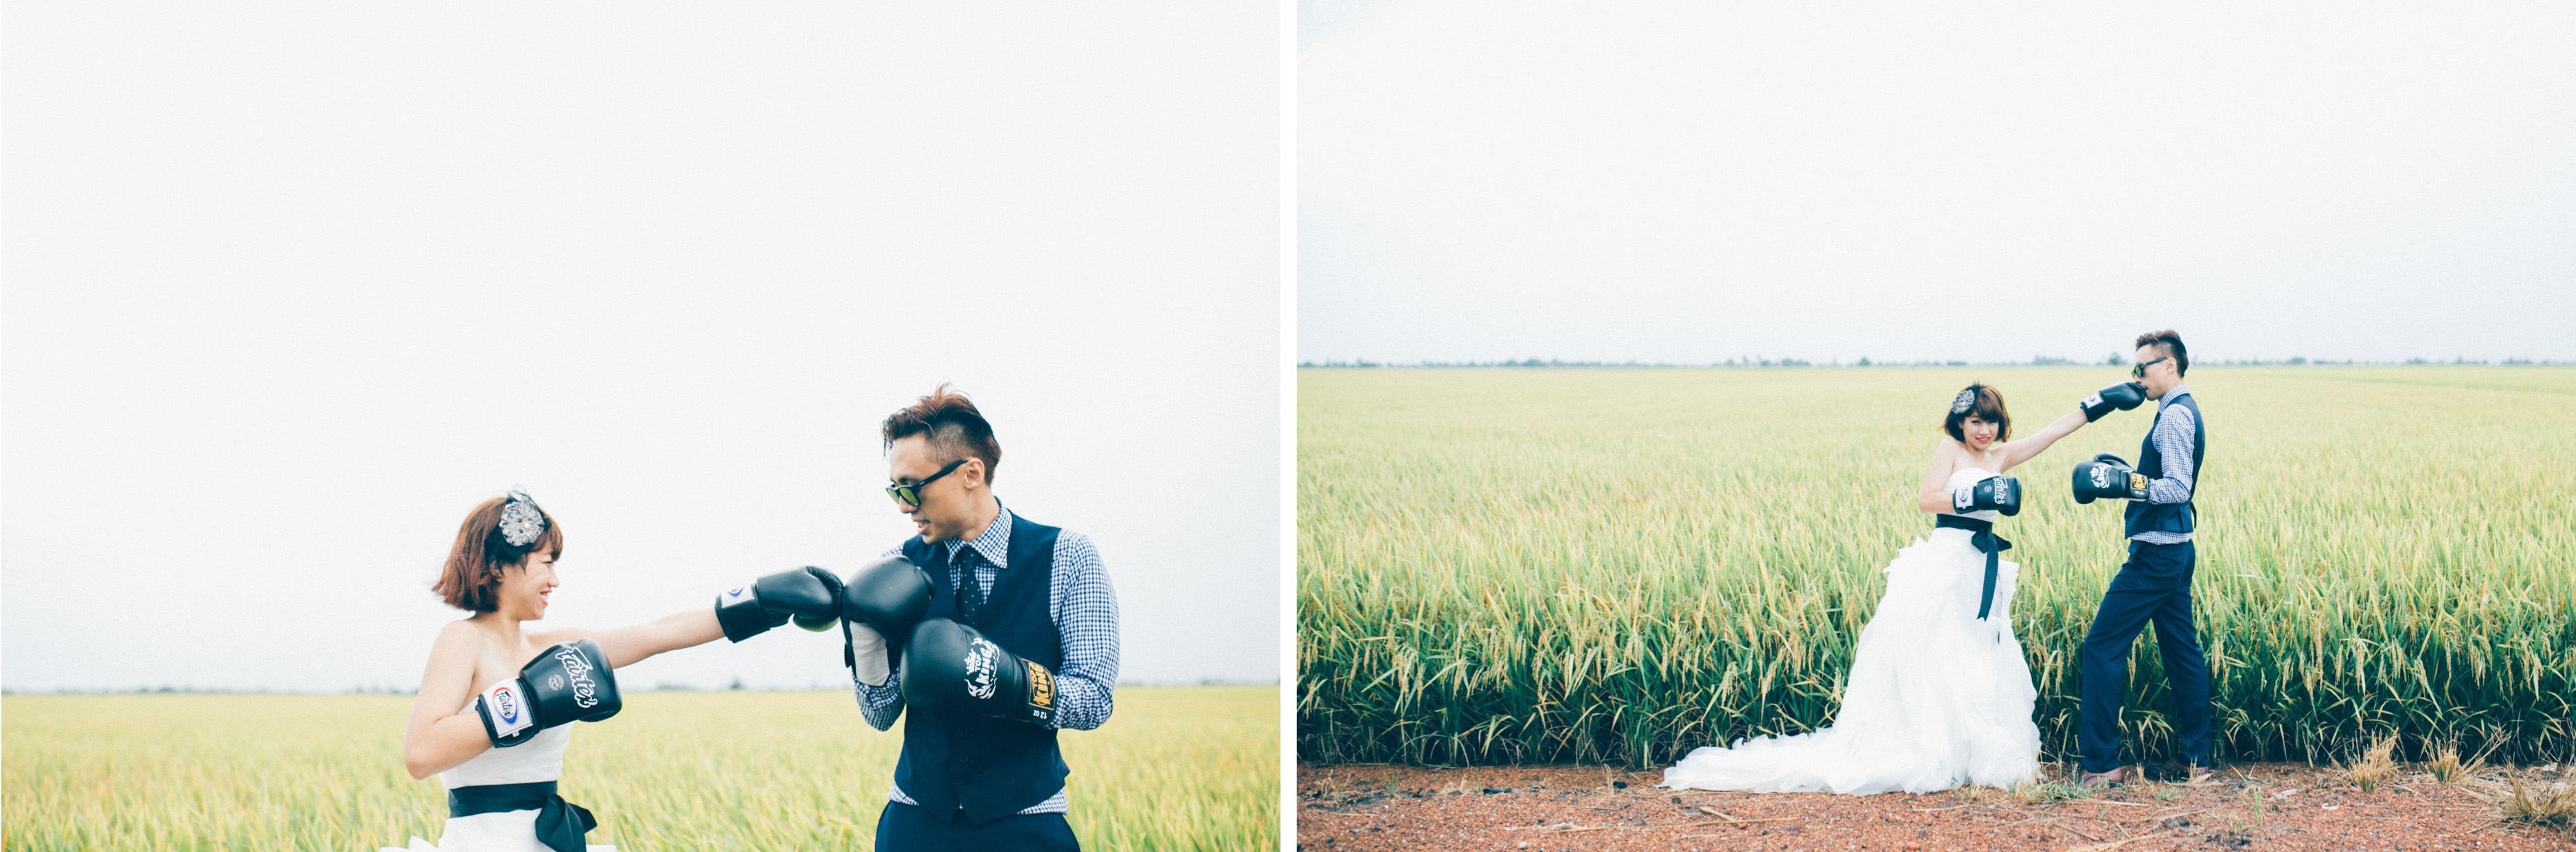 12-hellojanelee-singapore-malaysia-wedding-photographer-prewedding-carrie-sekinchan